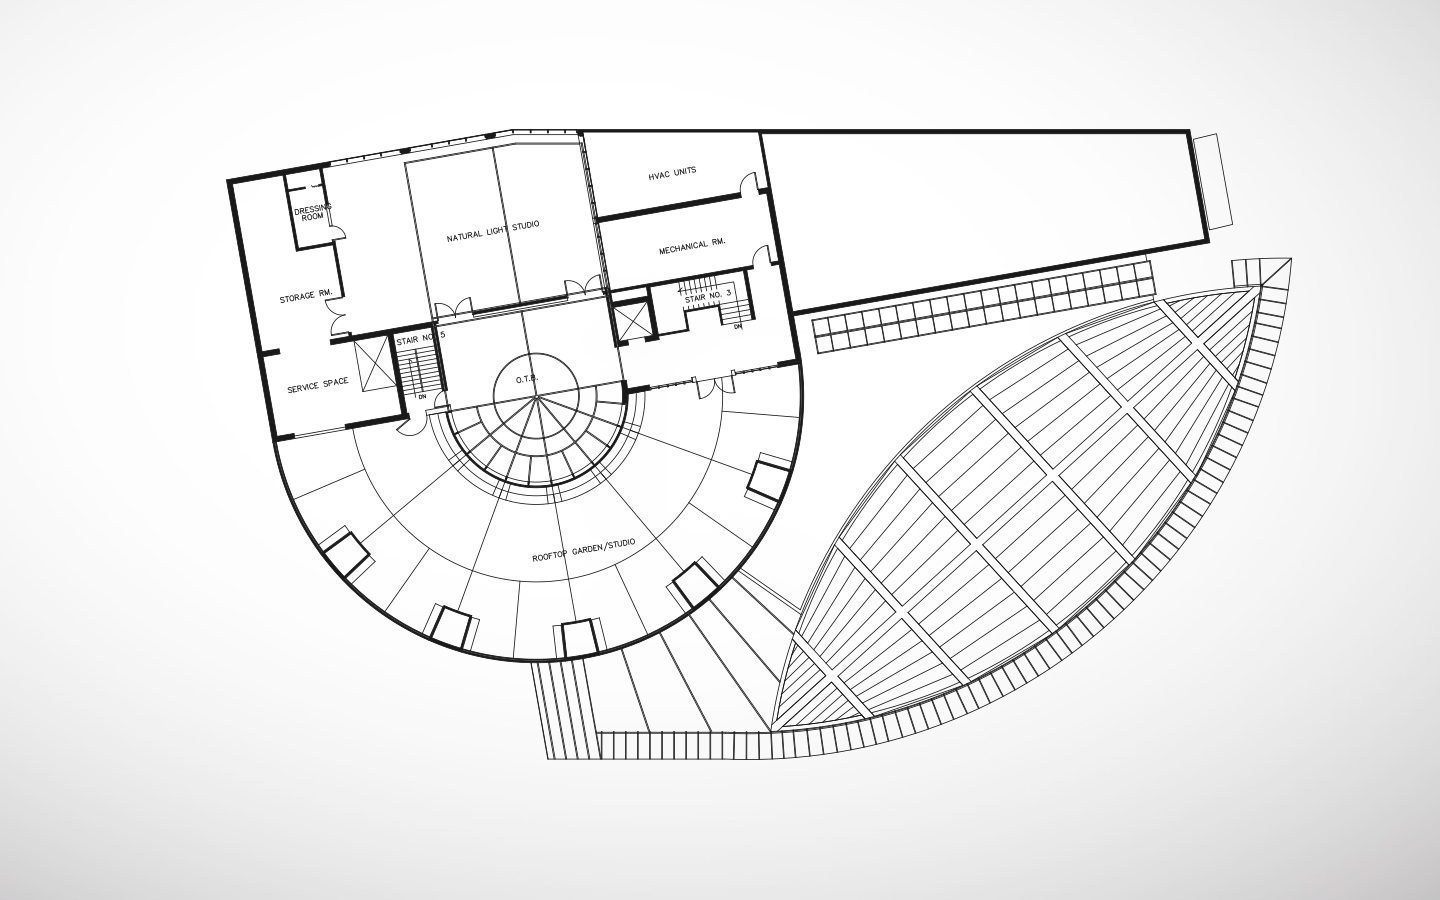 Photographic Arts Center - Third Floor Floor Plan, by Sanjiv Sirpal